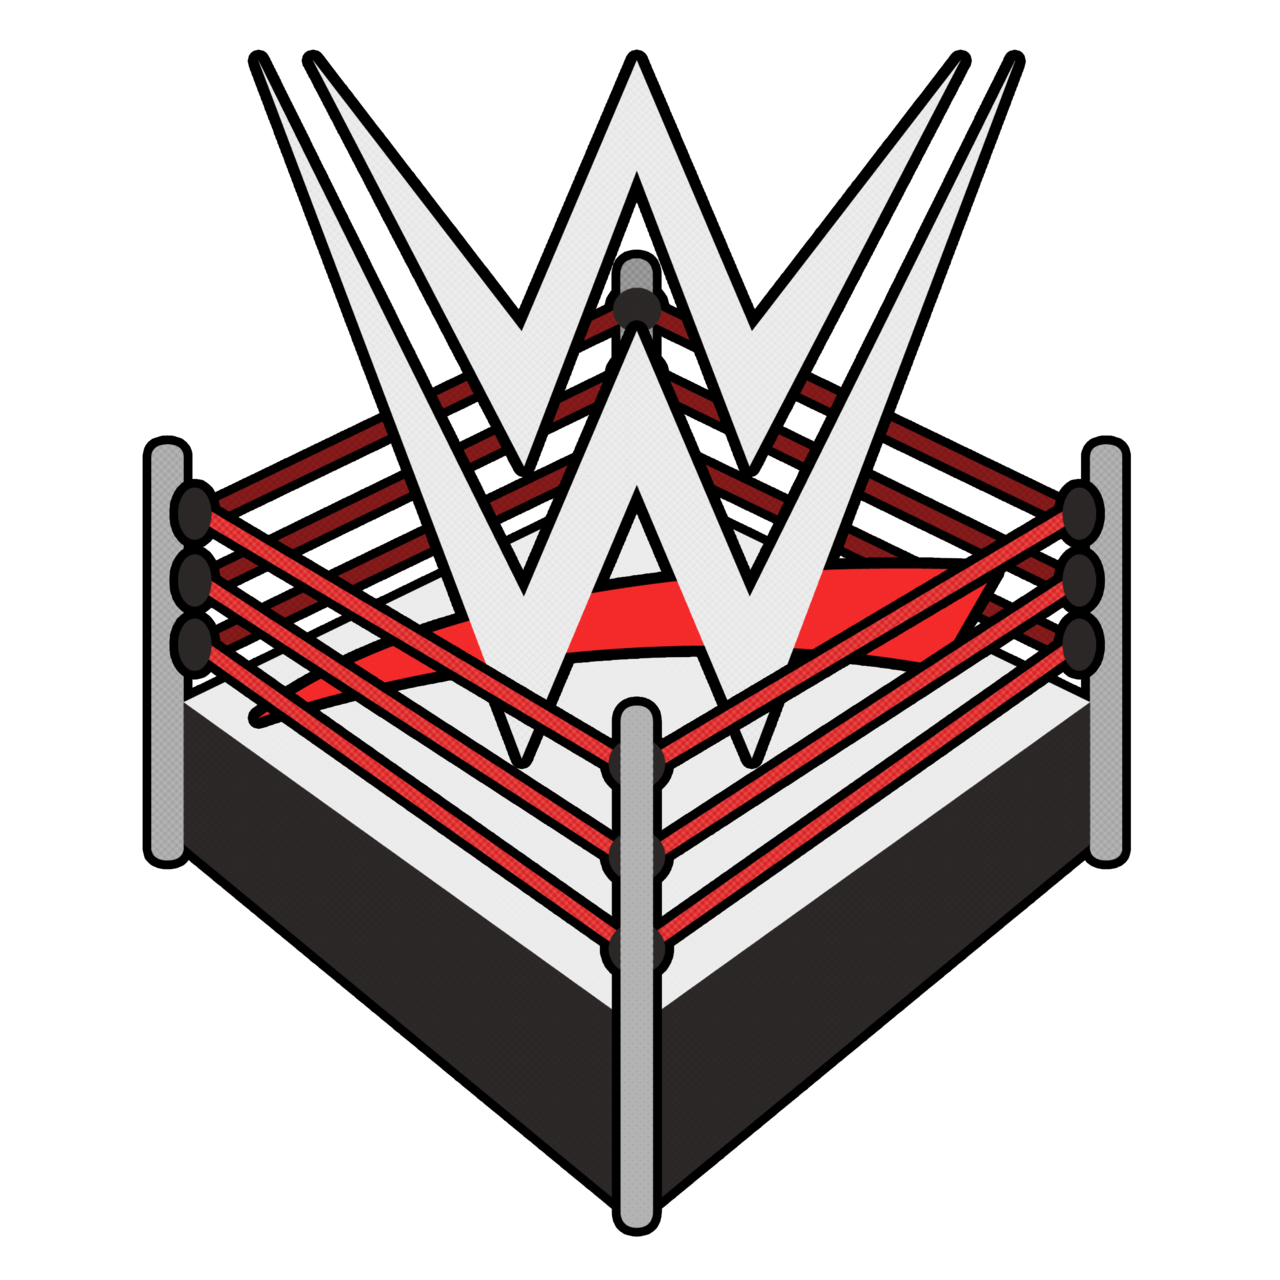 Wwe logo download clipart image black and white Download WWE Logo PNG Transparent Image - Free Transparent ... image black and white